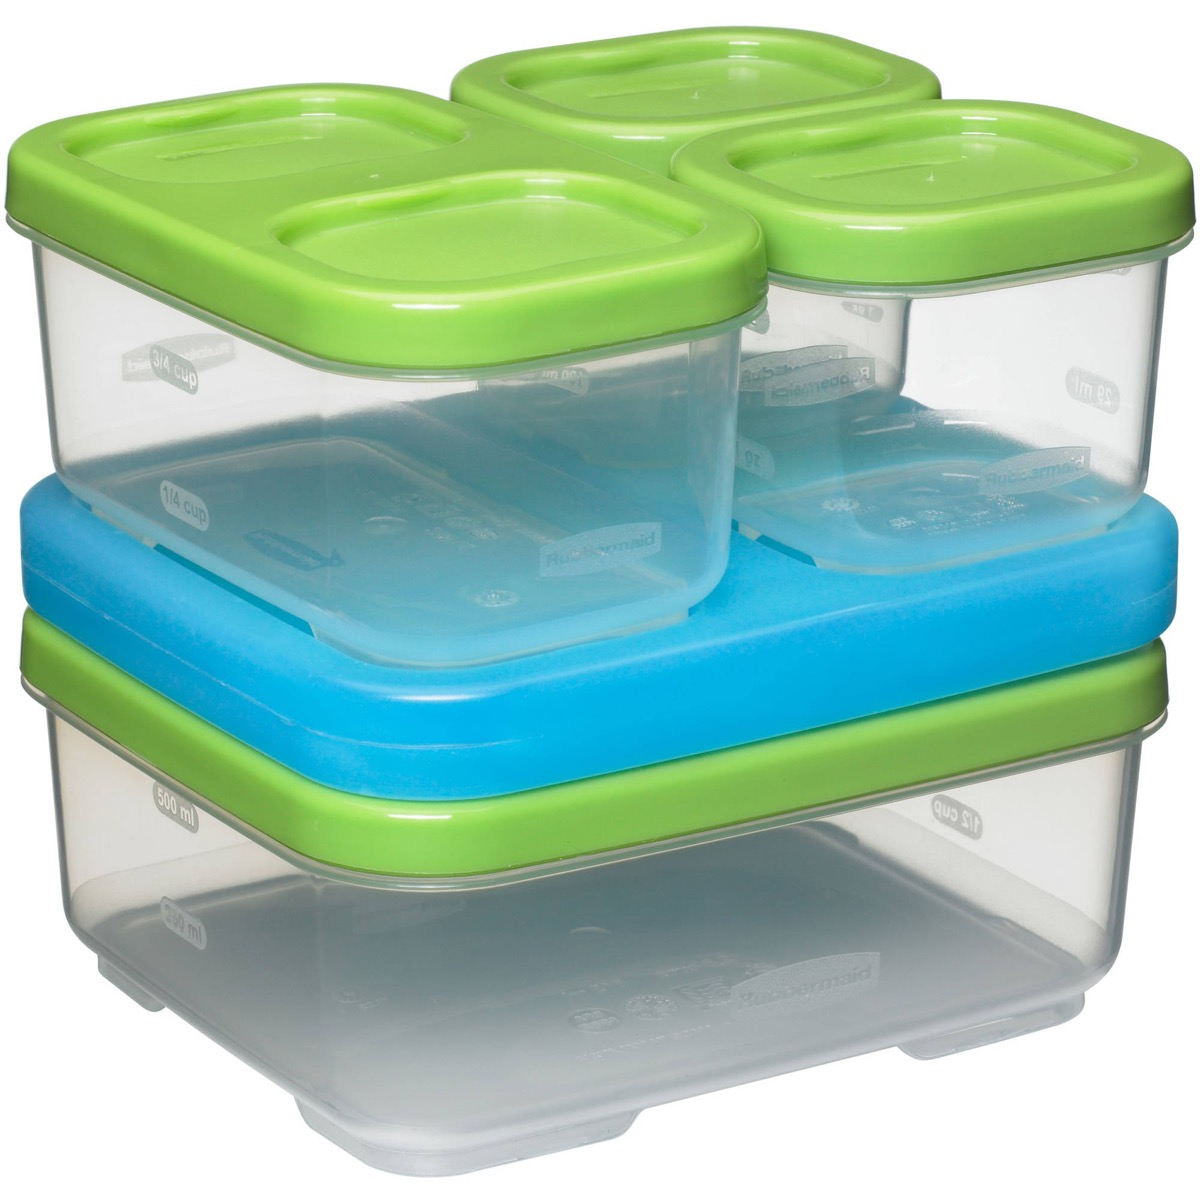 meal prep containers with green and blue lids, cheap meal prep containers